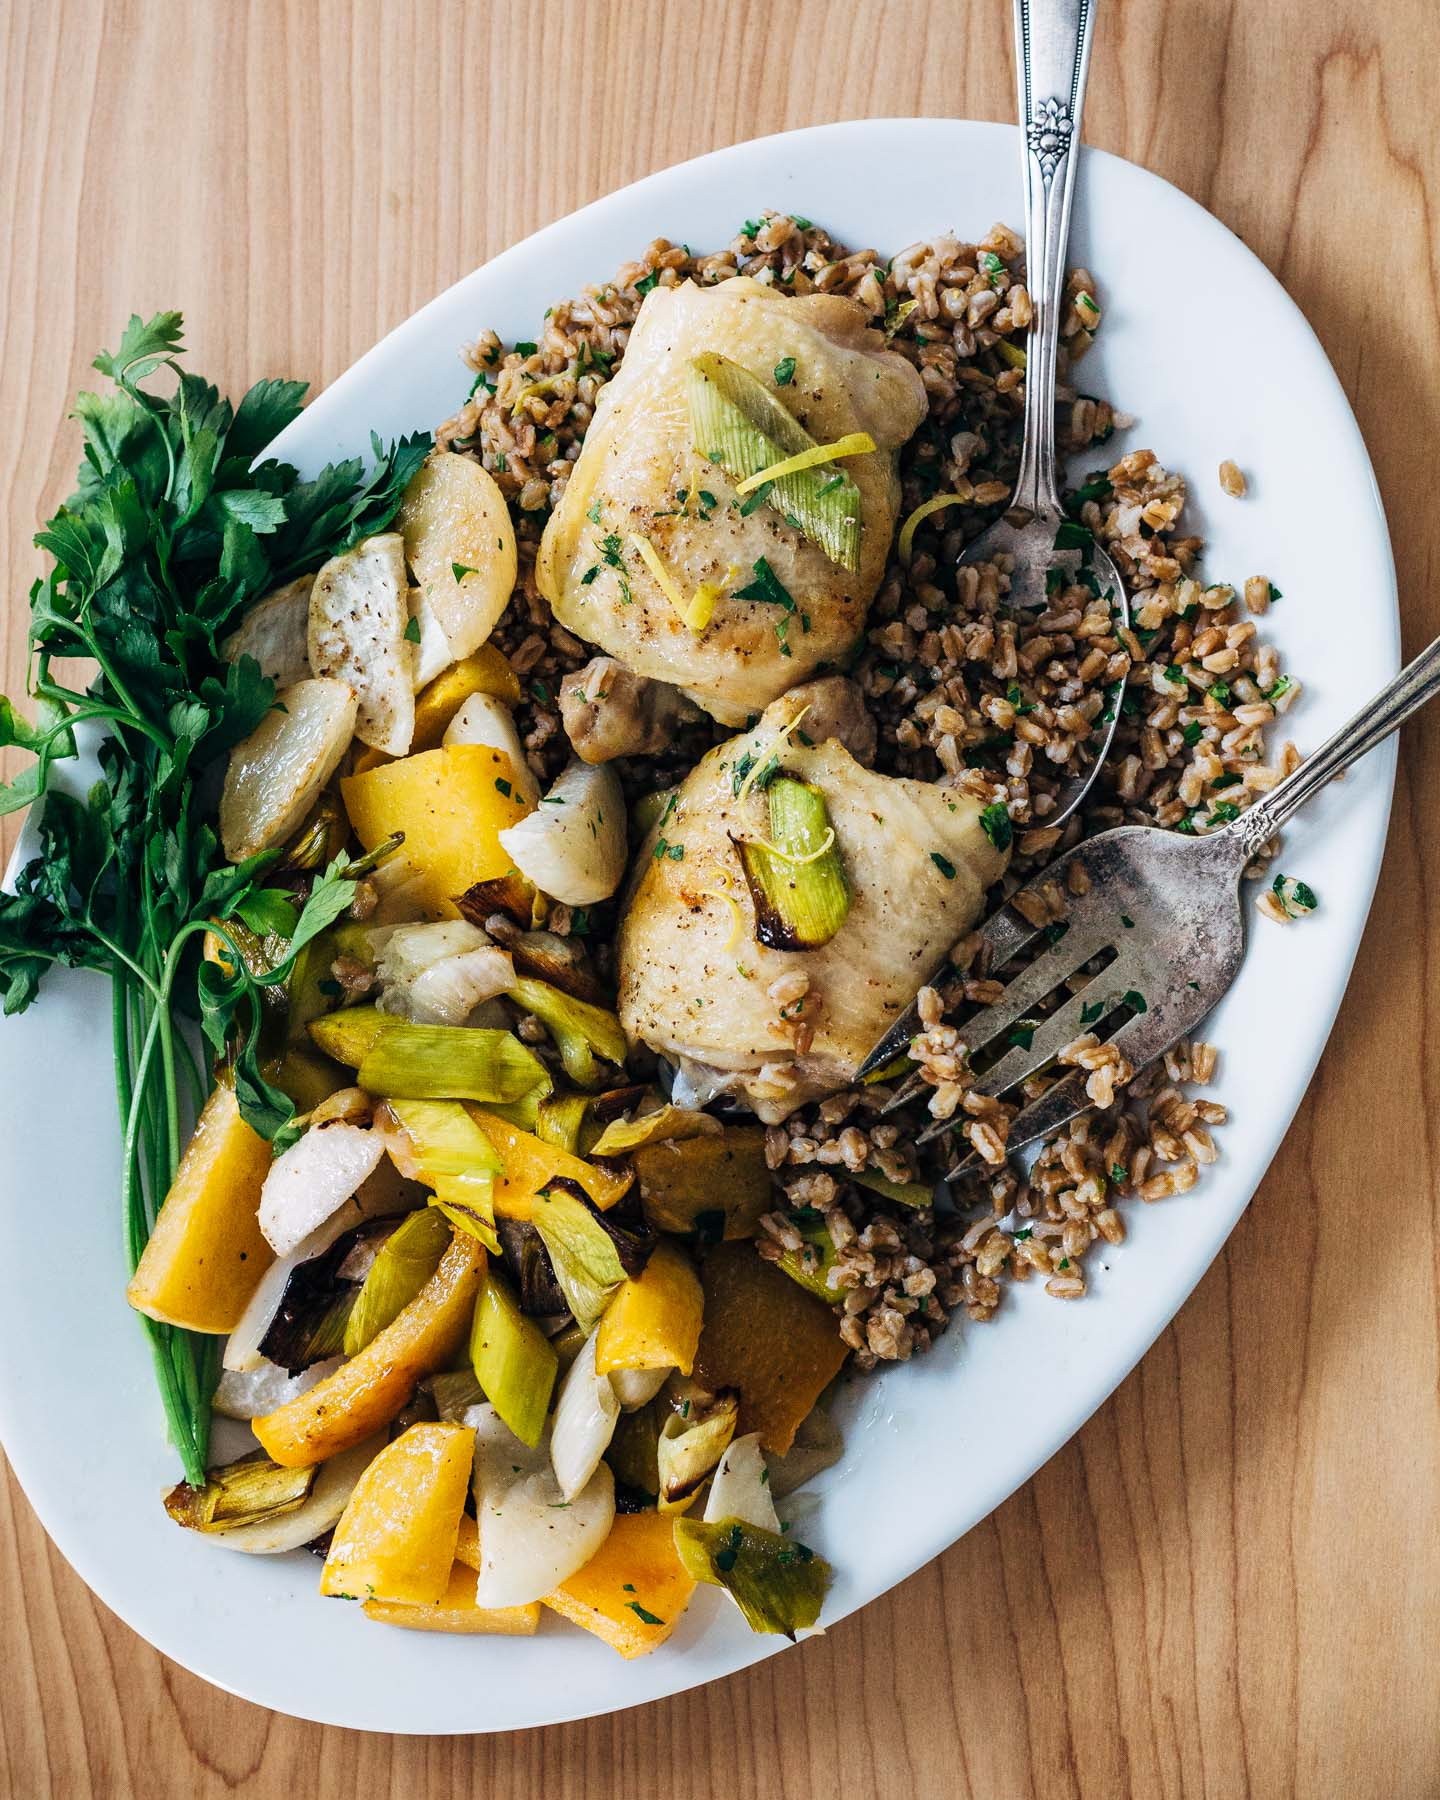 Sheet Pan Roasted Chicken and Vegetables Over Herbed Farro from brooklynsupper.com on foodiecrush.com